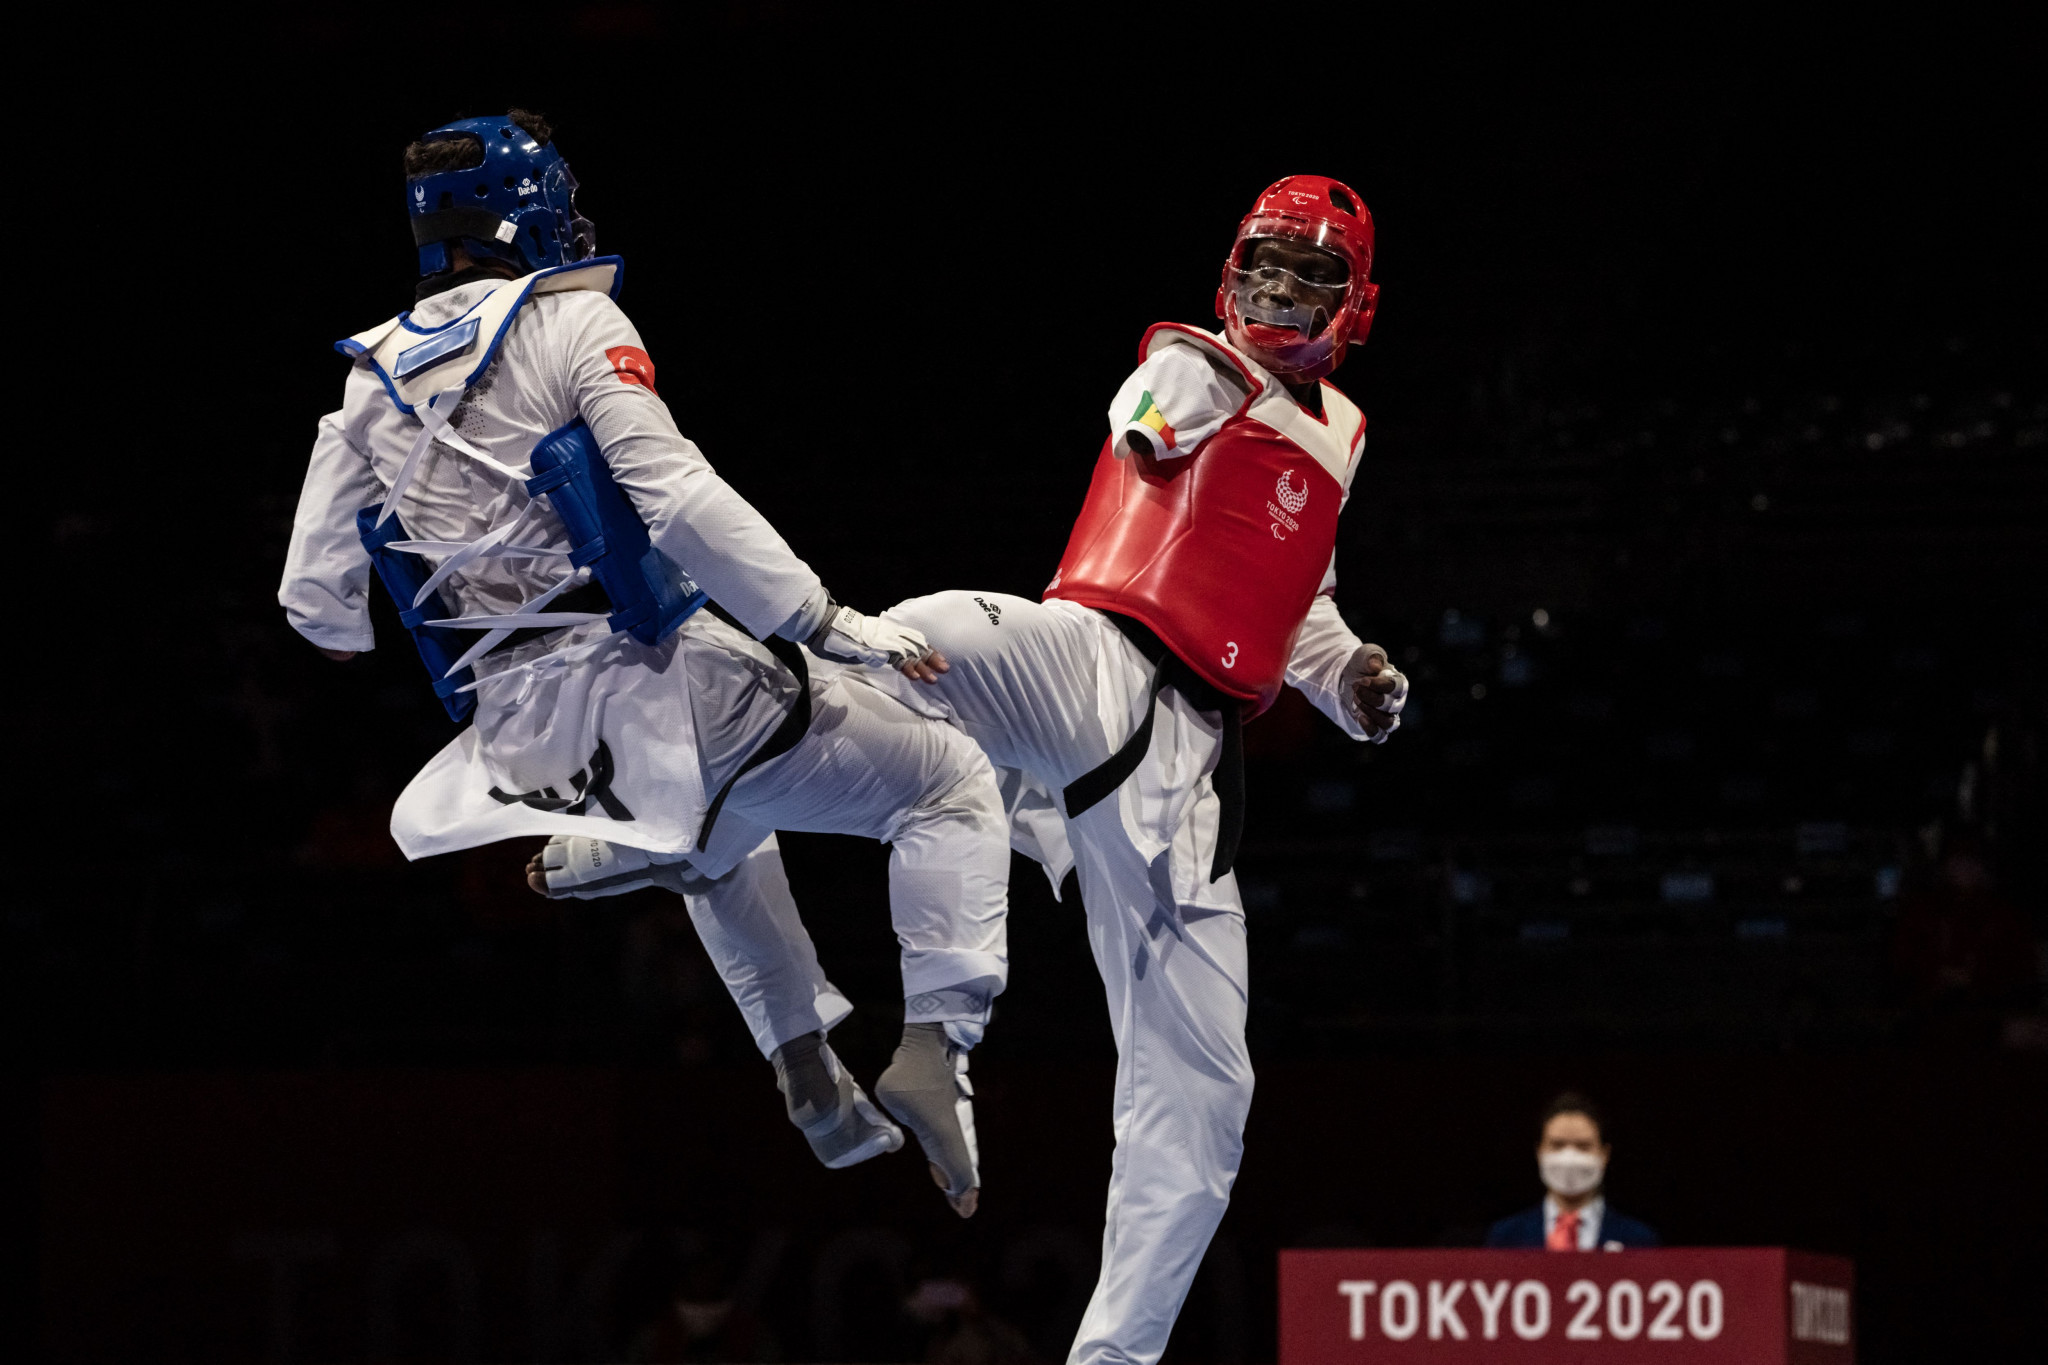 Para Taekwondo Committee chair believes 2022 will be important year for the sport